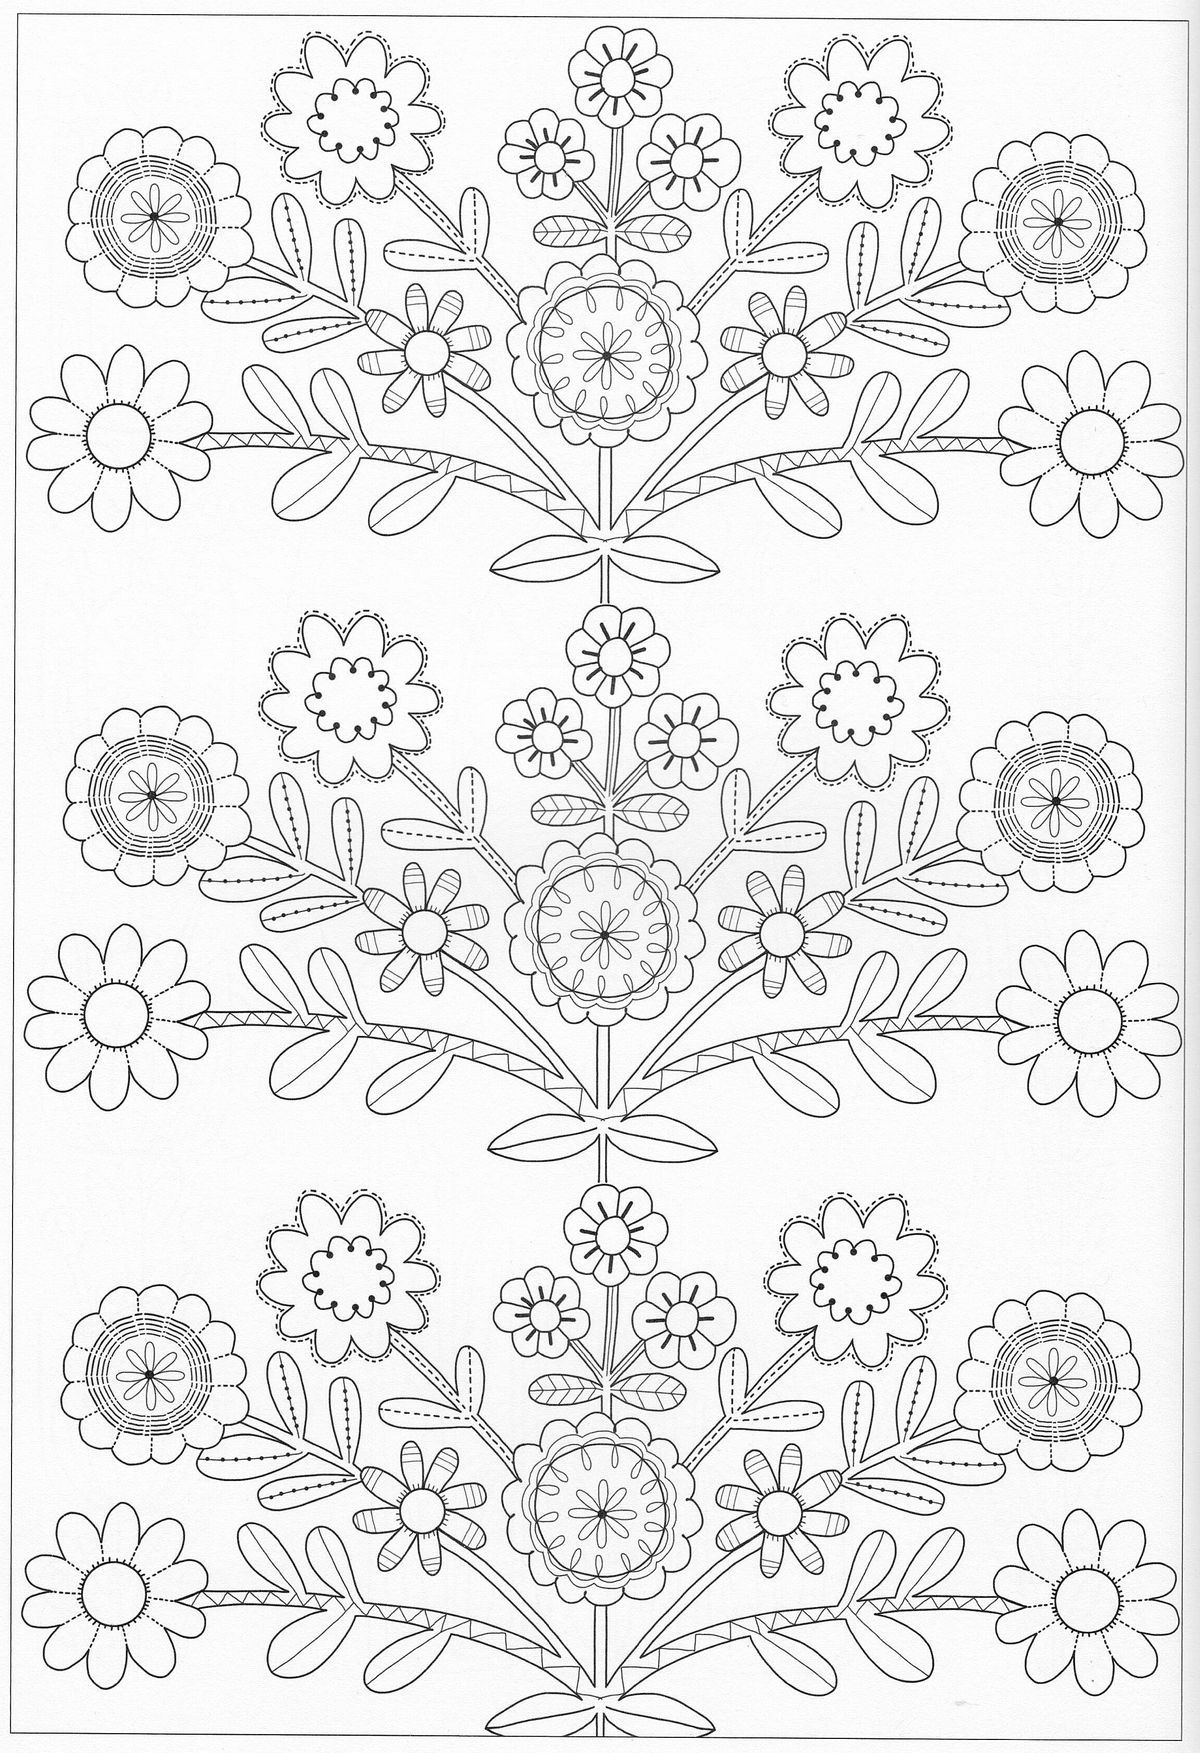 Scandinavian Coloring Book Pg 45 | Картинки | Pinterest | Bordado ...